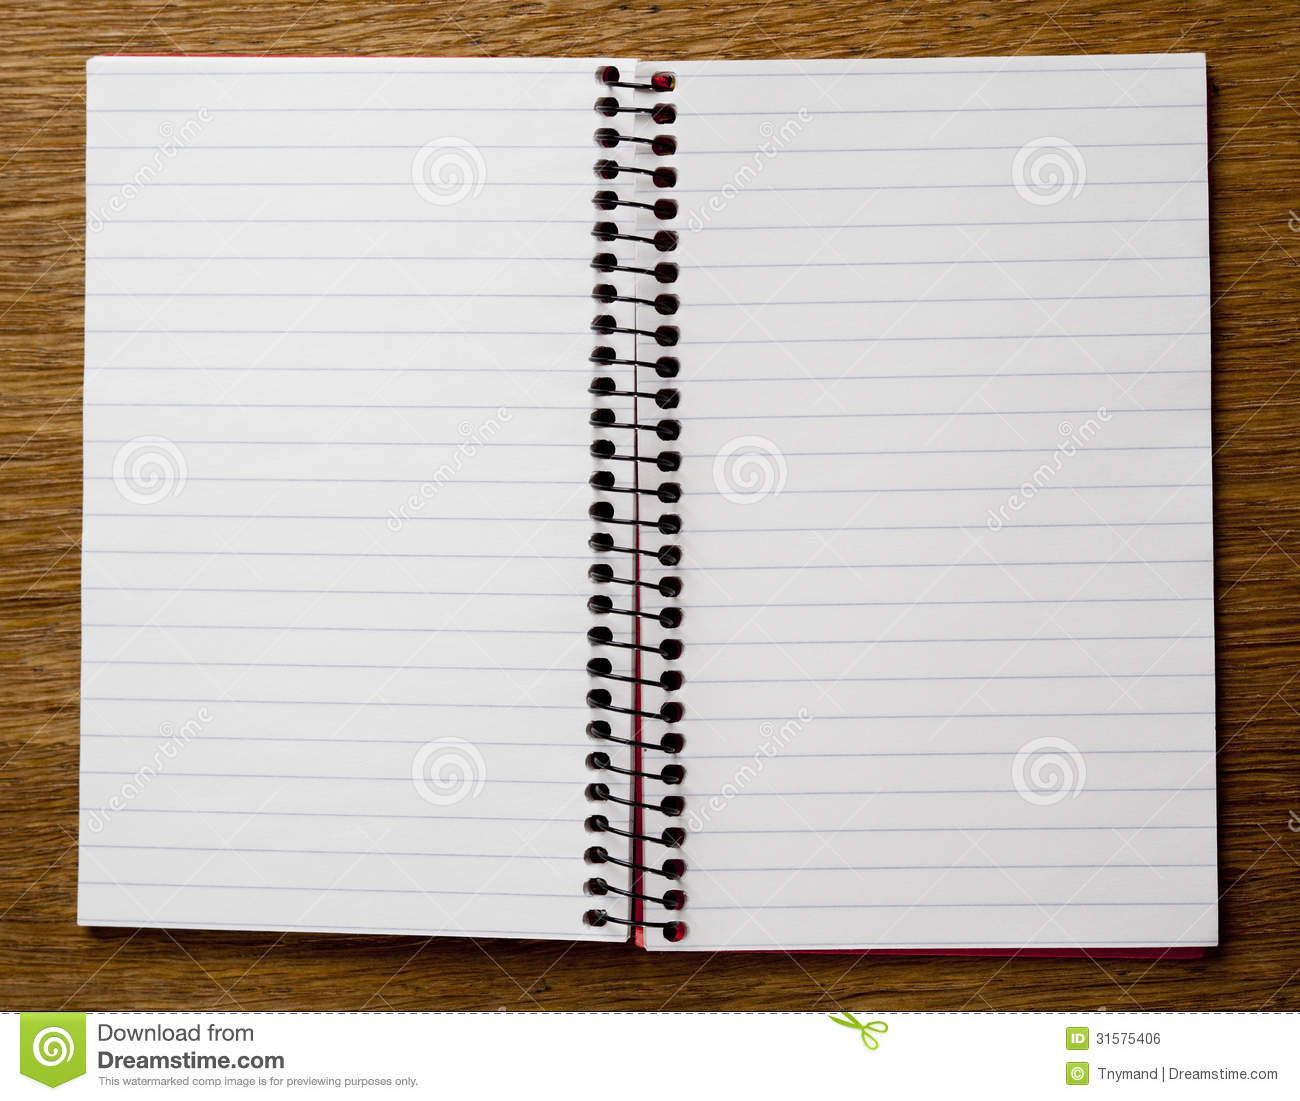 Empty Lined Paper Book Royalty Free Stock Image - Image: 31575406